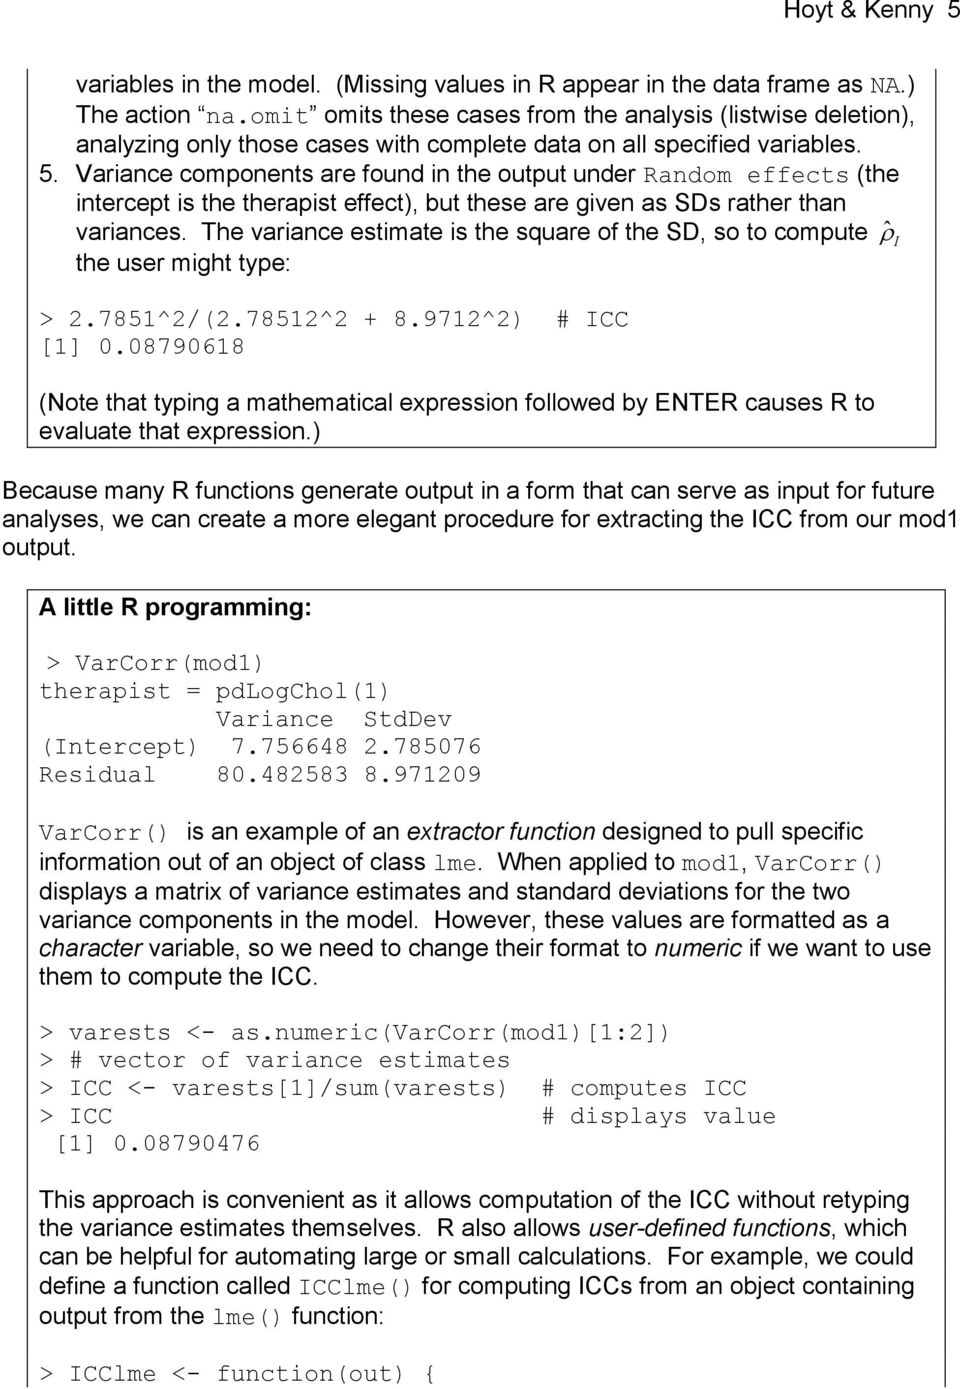 Multilevel Modeling in R, Using the nlme Package - PDF